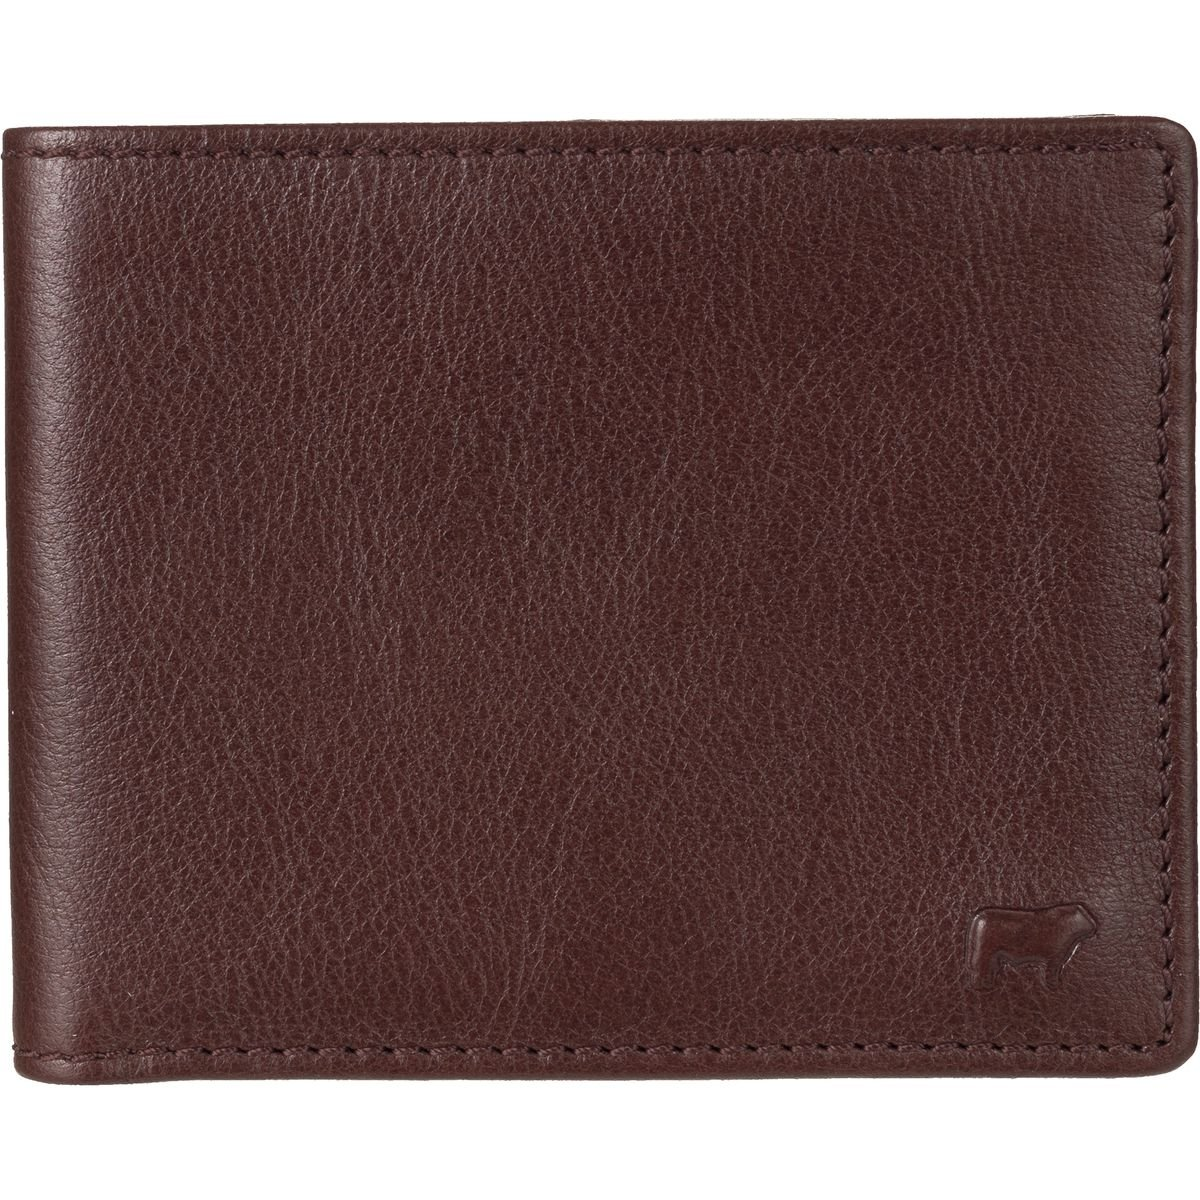 Will Leather Goods Classic Billfold Wallet Brown, One Size